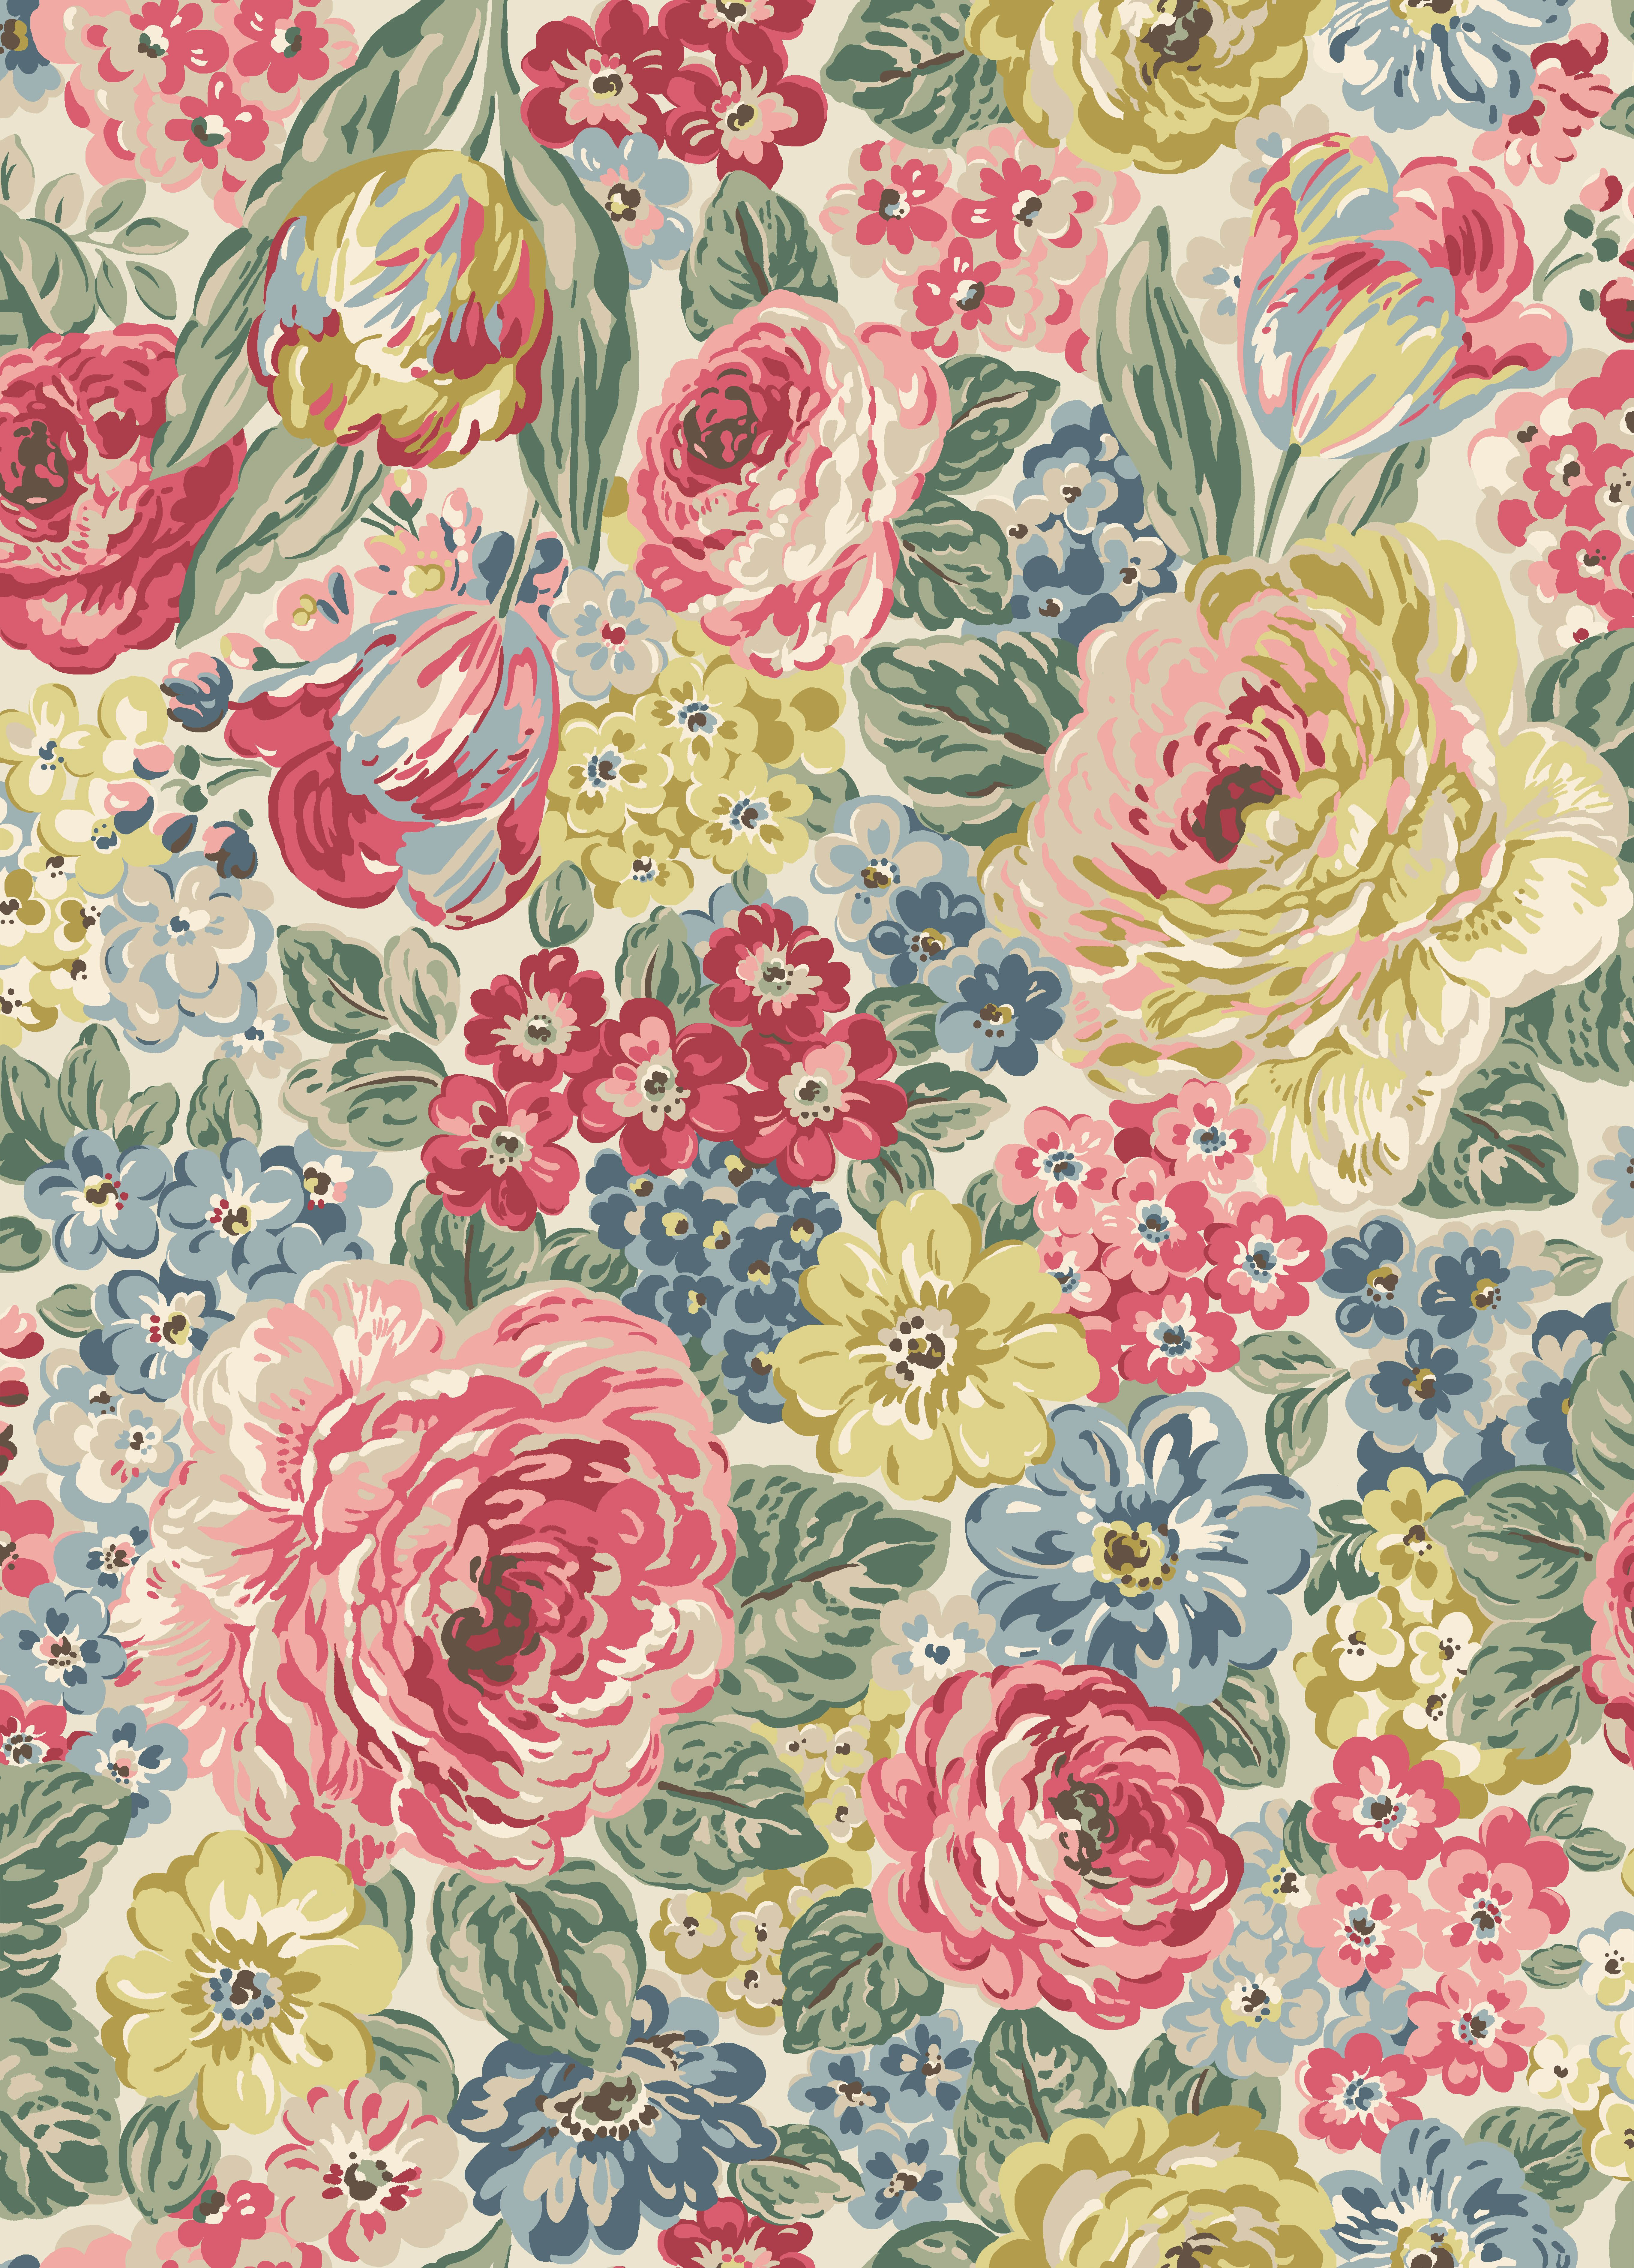 Orchard Bloom A large, full bloom multi floral in soft